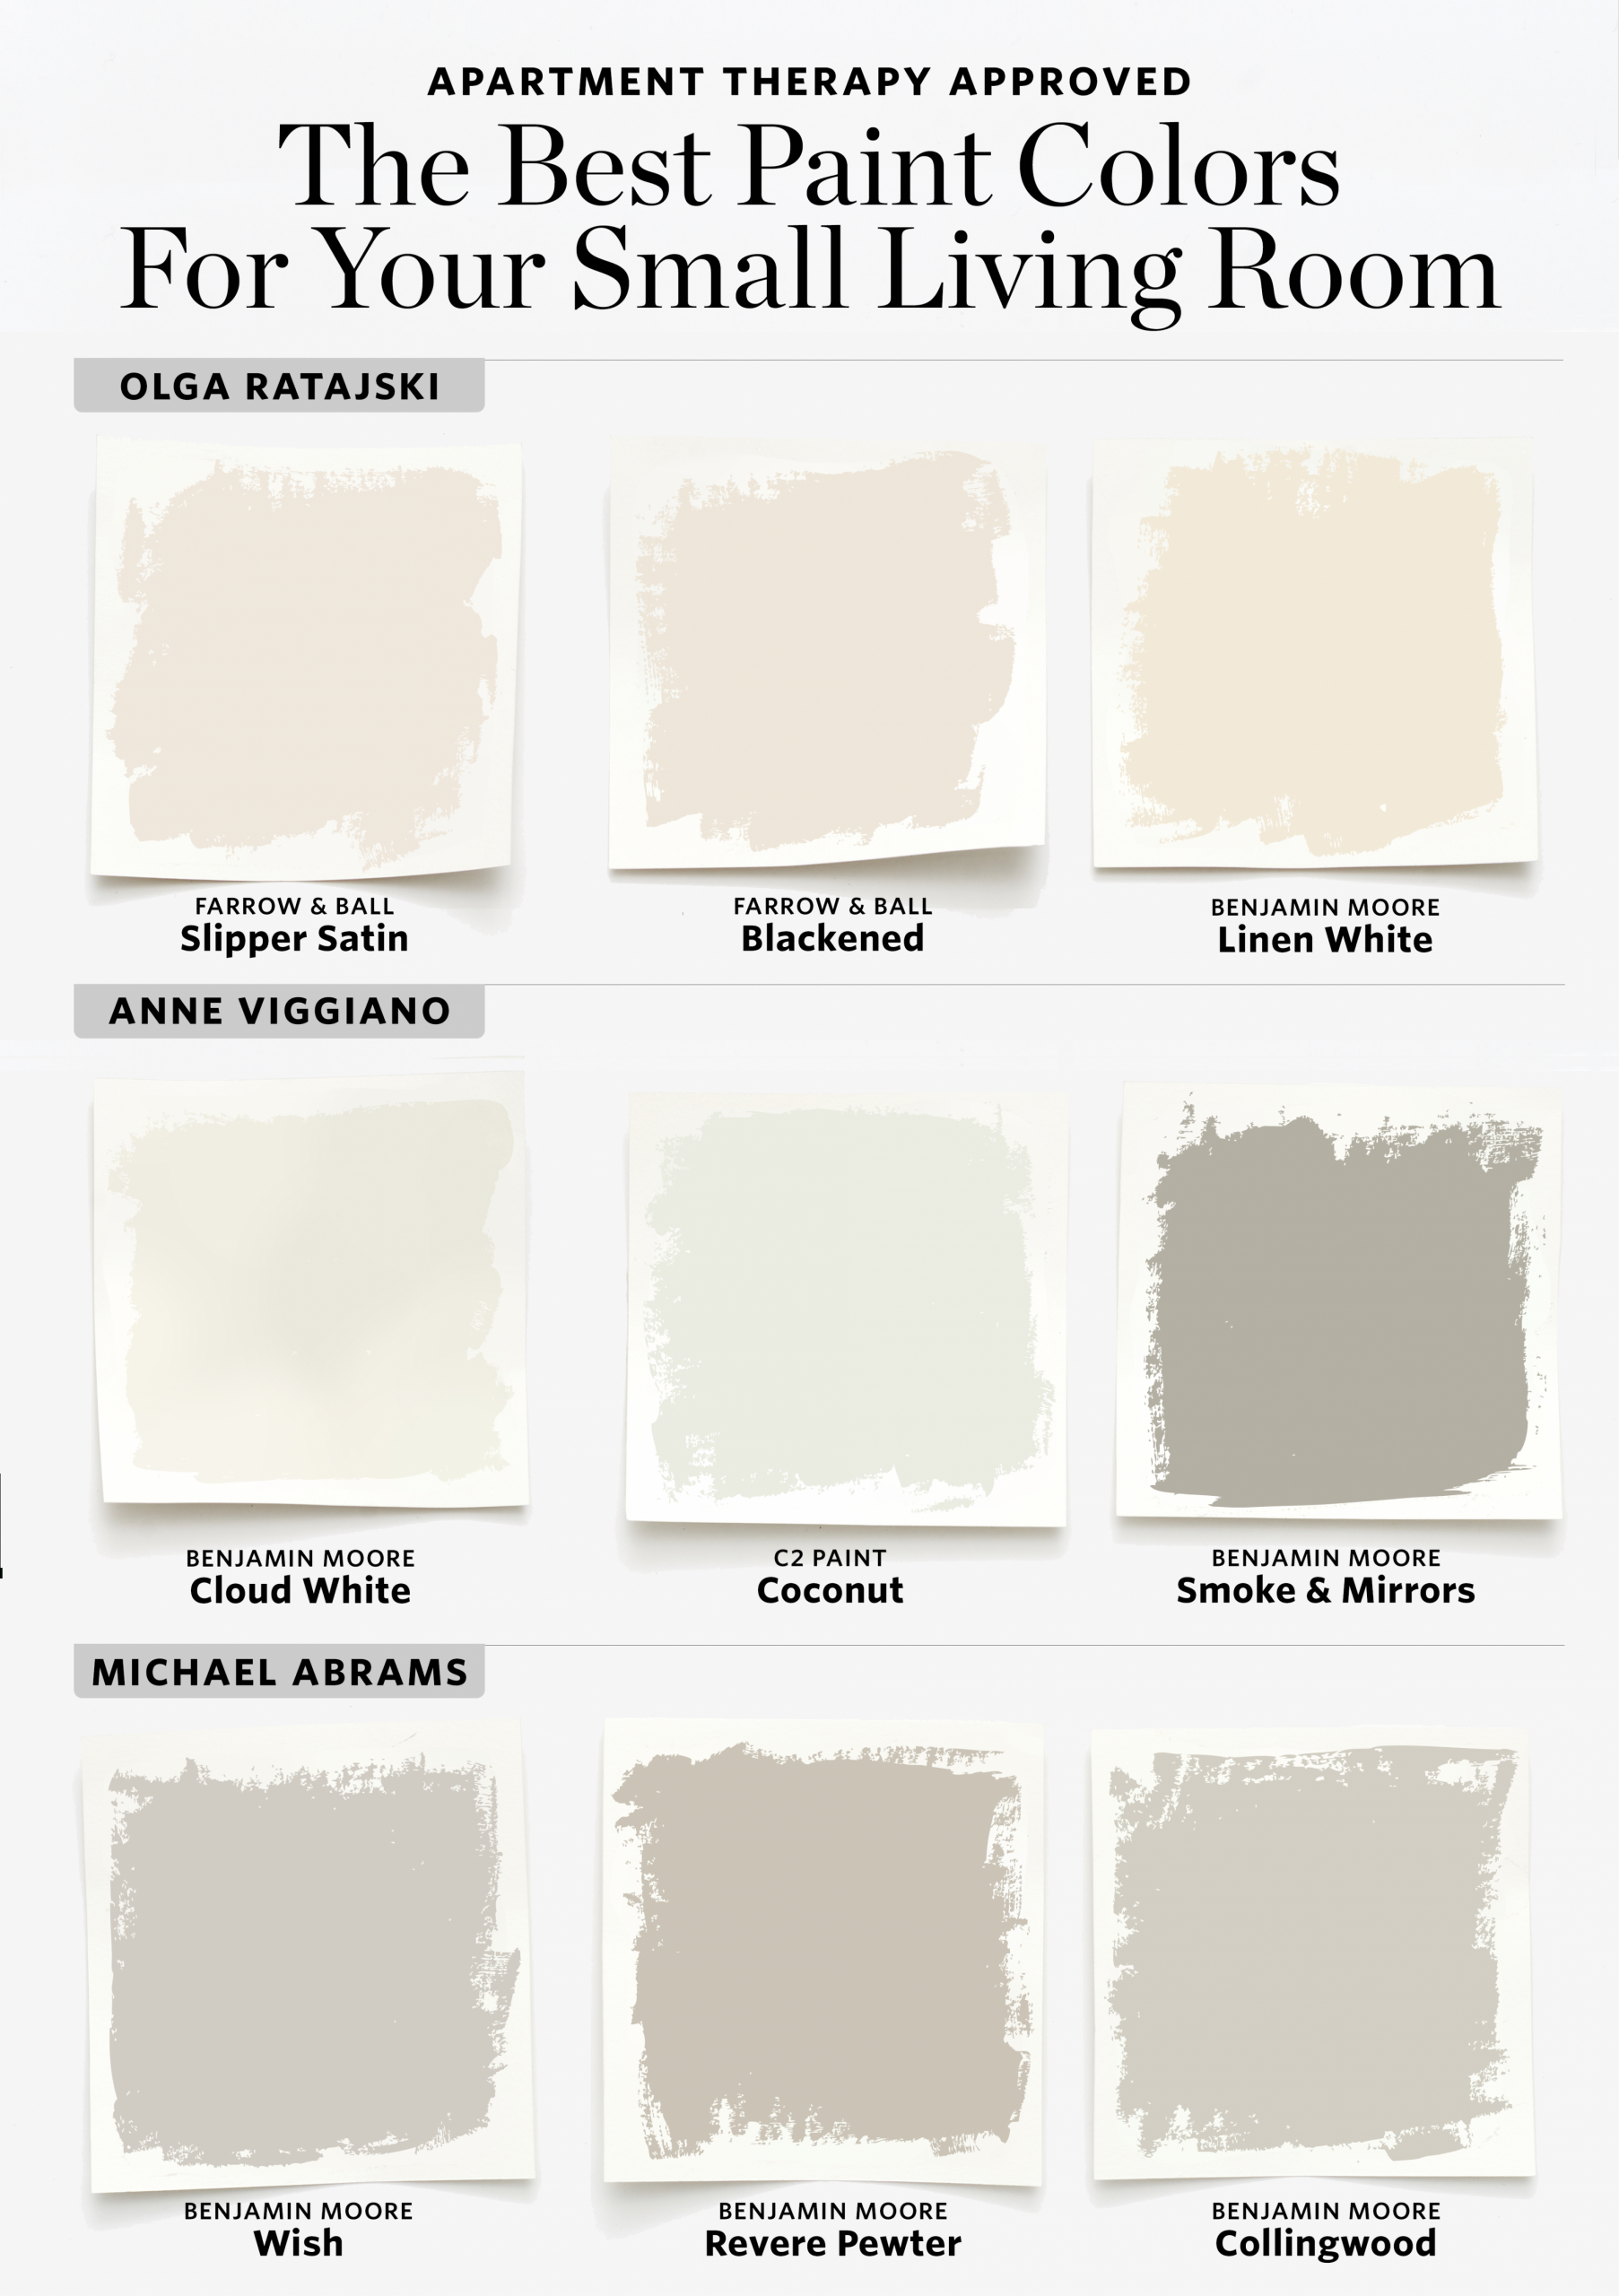 Best Paint Colors For Small Living Rooms | Apartment Therapy throughout Paint Colors For Small Living Rooms